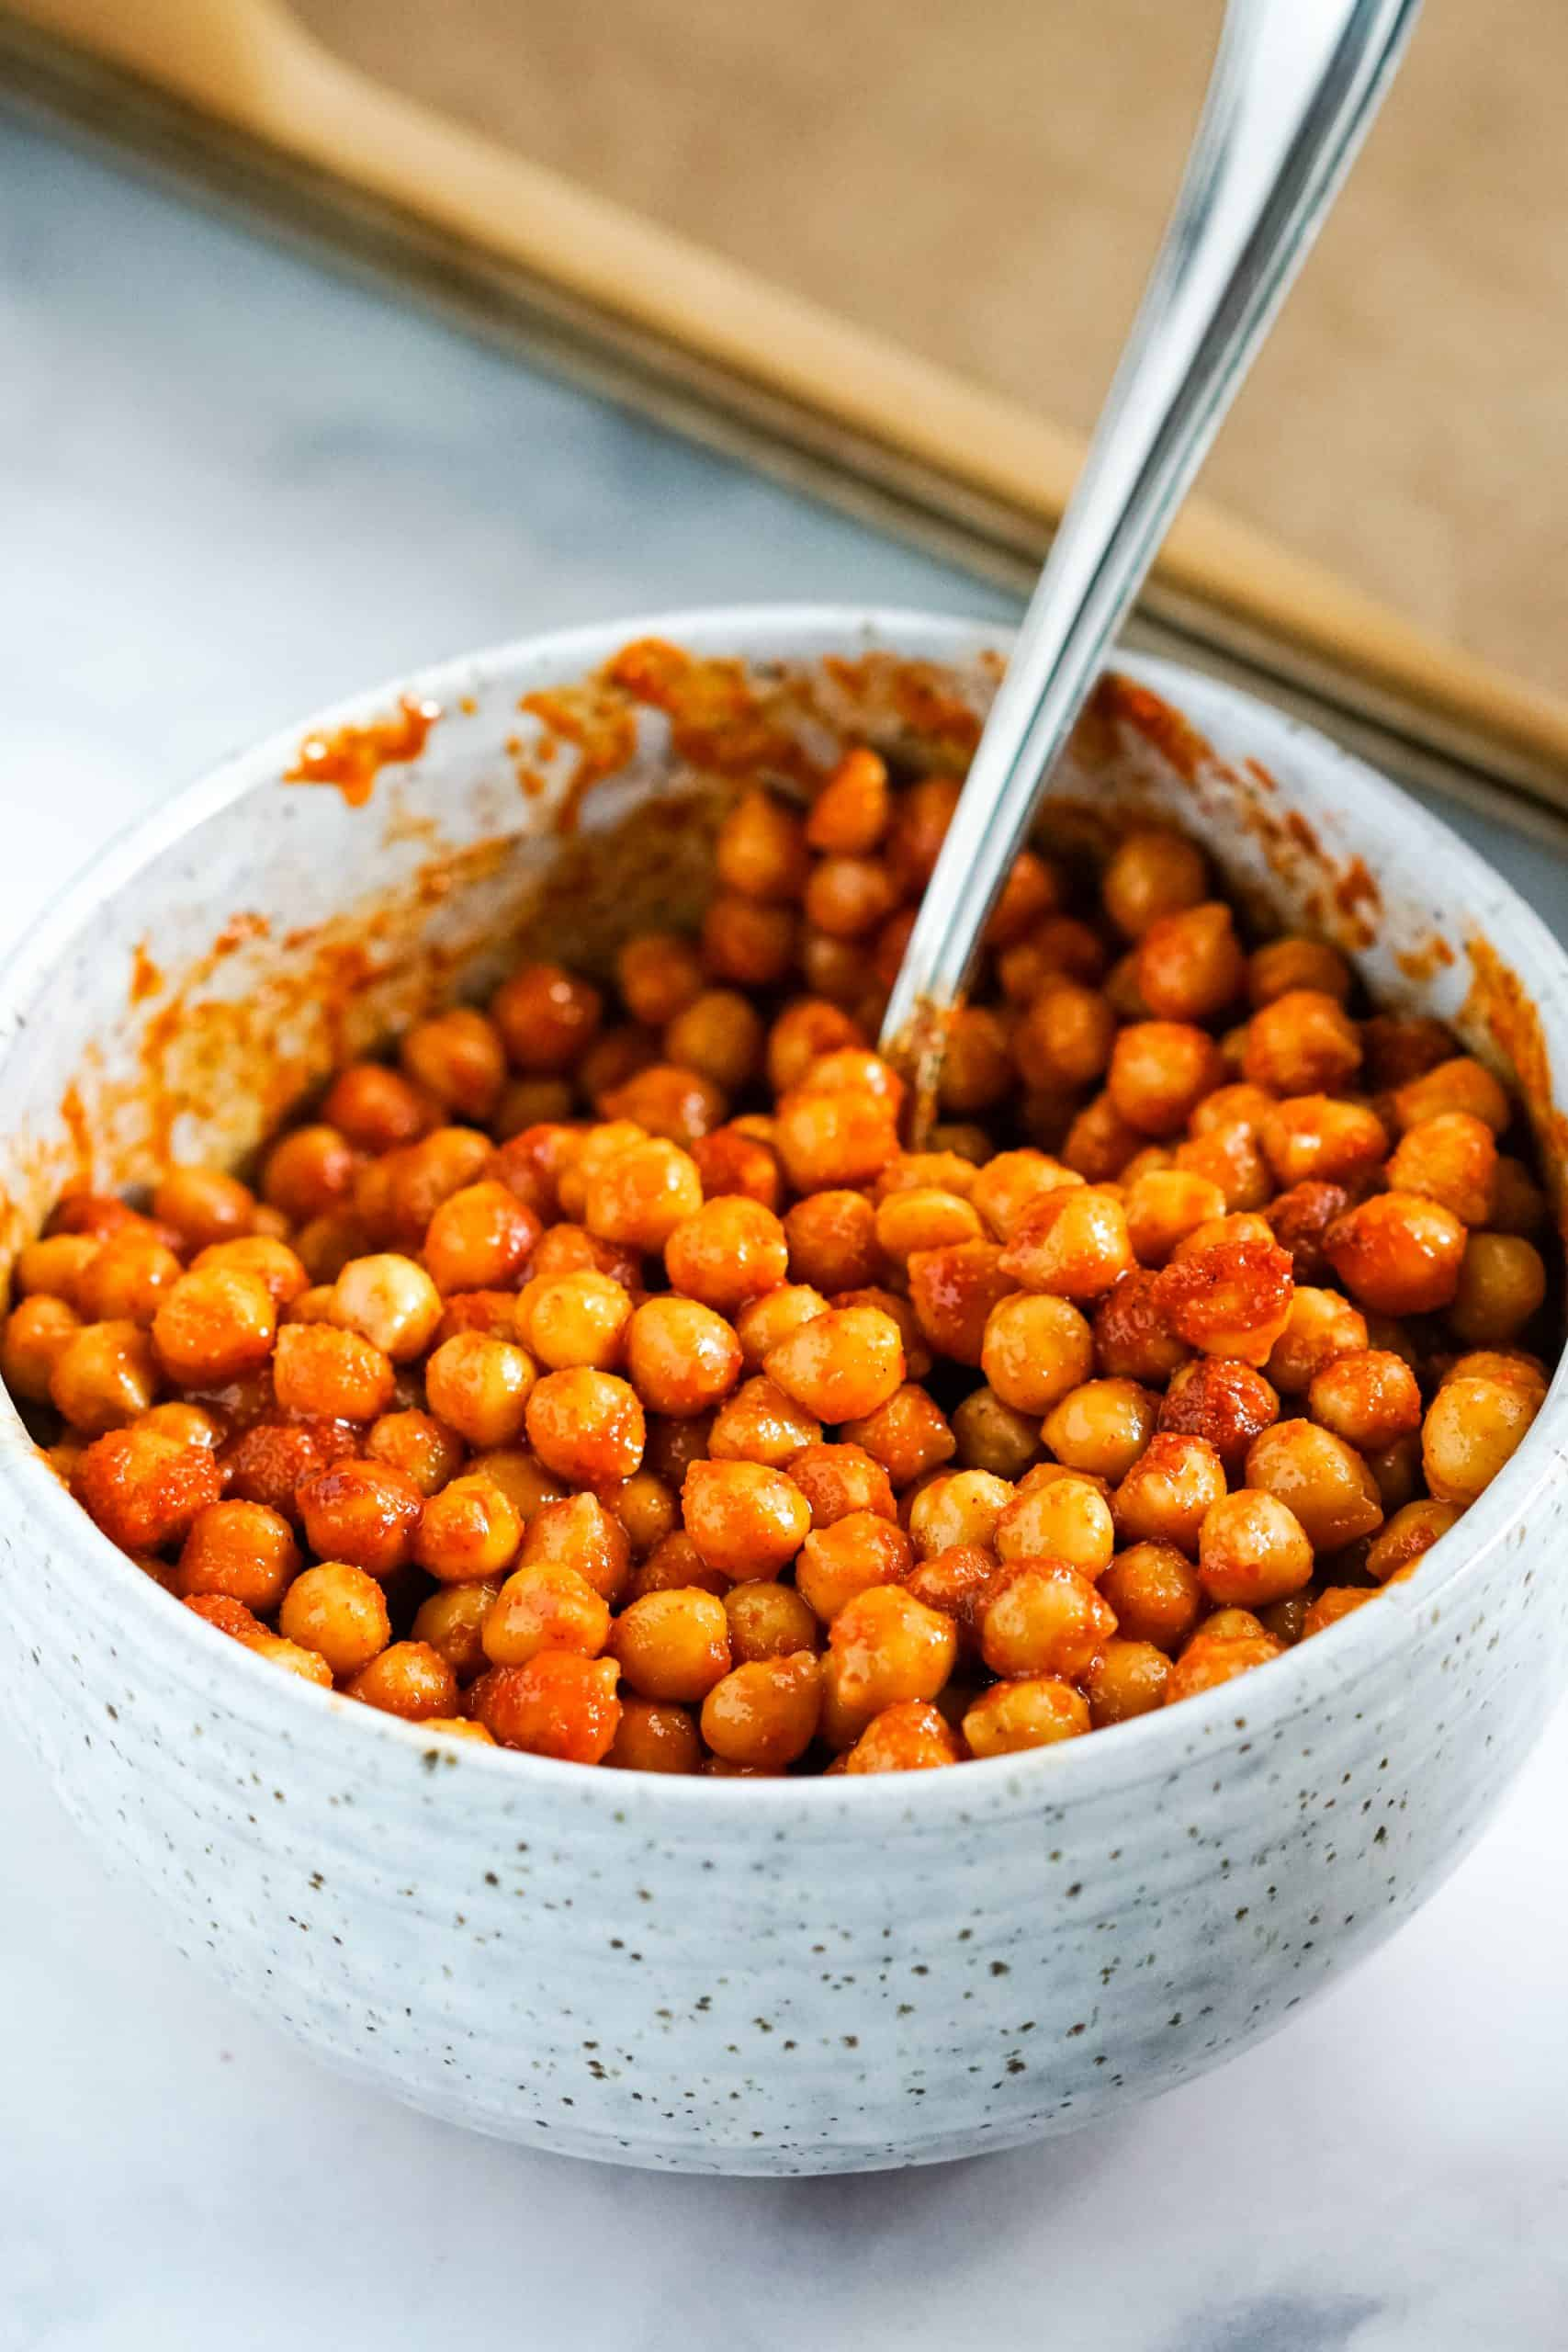 chickpeas coated with buffalo sauce.